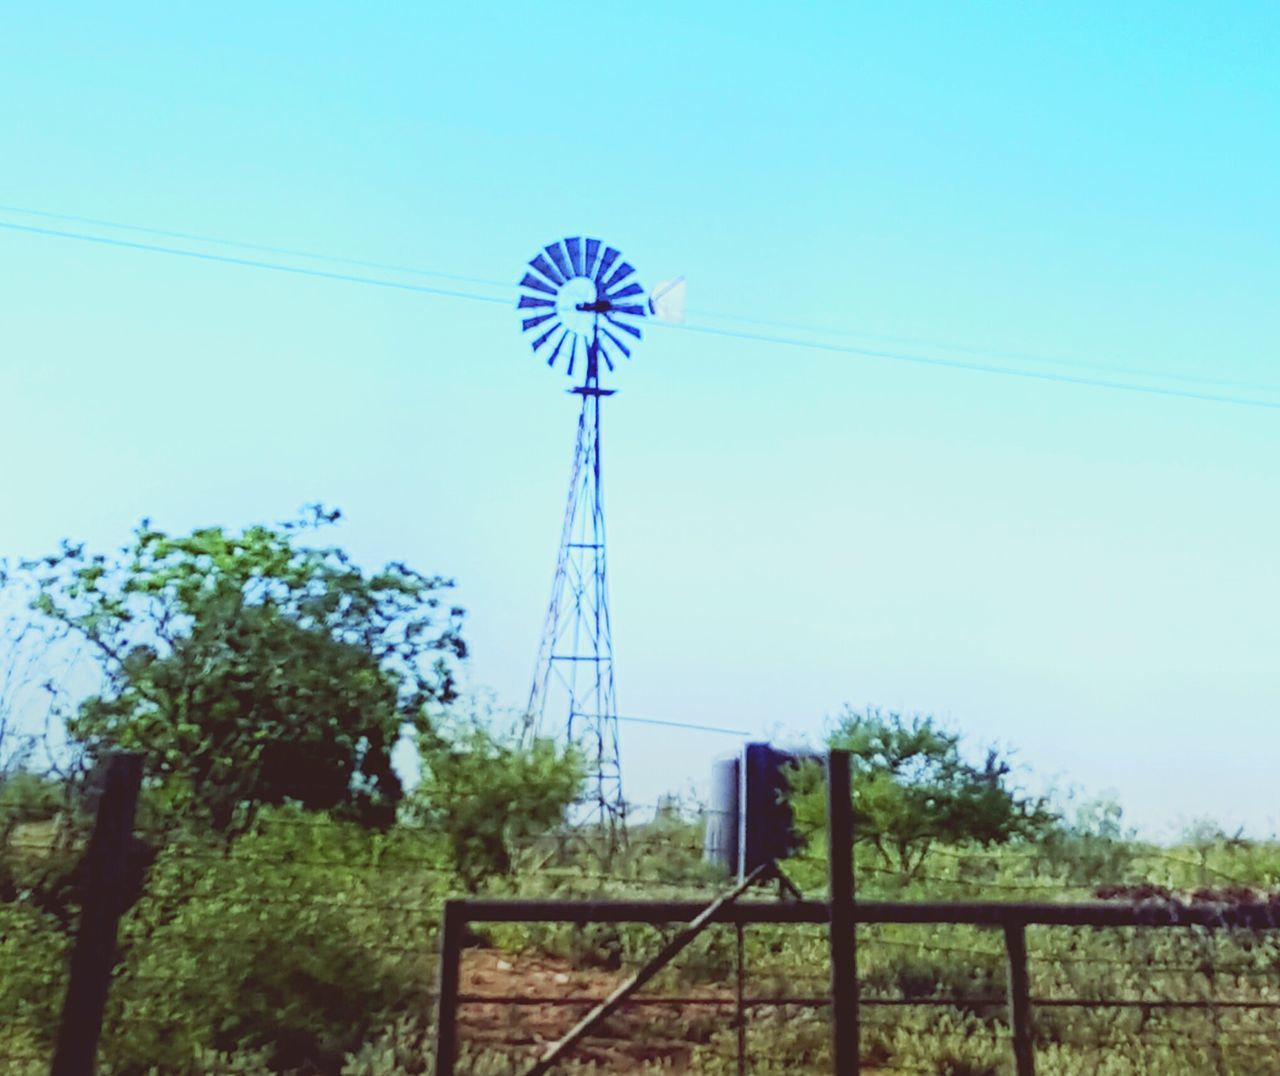 Nice little country windmill scene... only in West Texas!! Fuel And Power Generation Power Supply Alternative Energy Renewable Energy Rural Scene Outdoors Wind Power Still Beautiful  Driving And Shooting The Week On Eyem Eyeemoninstragram EyeEm Gallery Gottaloveeyeem Texasphotographer Texas Made Eyem Photo Wheel In The Sky Rotationintheair Rotational Energy Texas Fashion Airdriving Spinning Around You Spin Me Right Round The Great Outdoors - 2017 EyeEm Awards